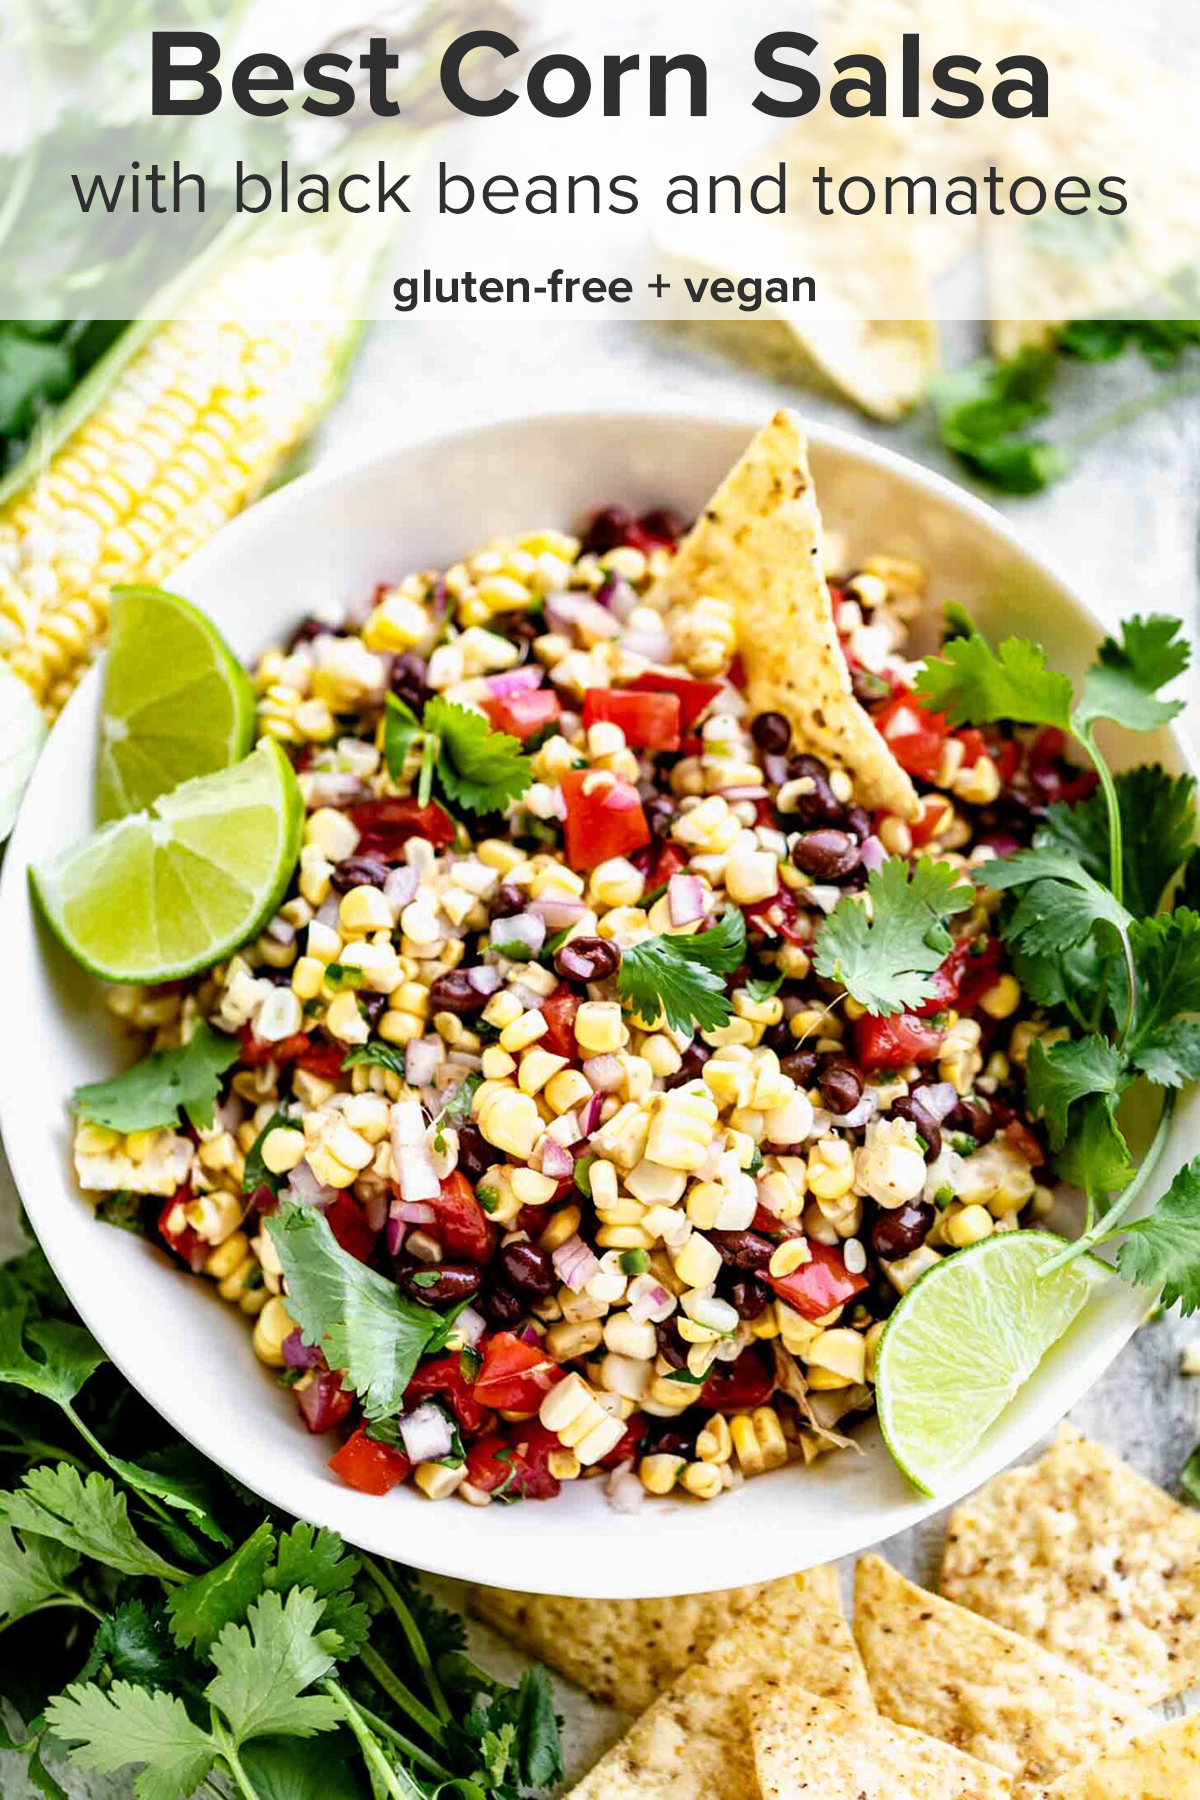 a bowl of corn salsa with a chip in it, garnished with cilantro sprigs and lime wedges and the recipe title on top of the image.